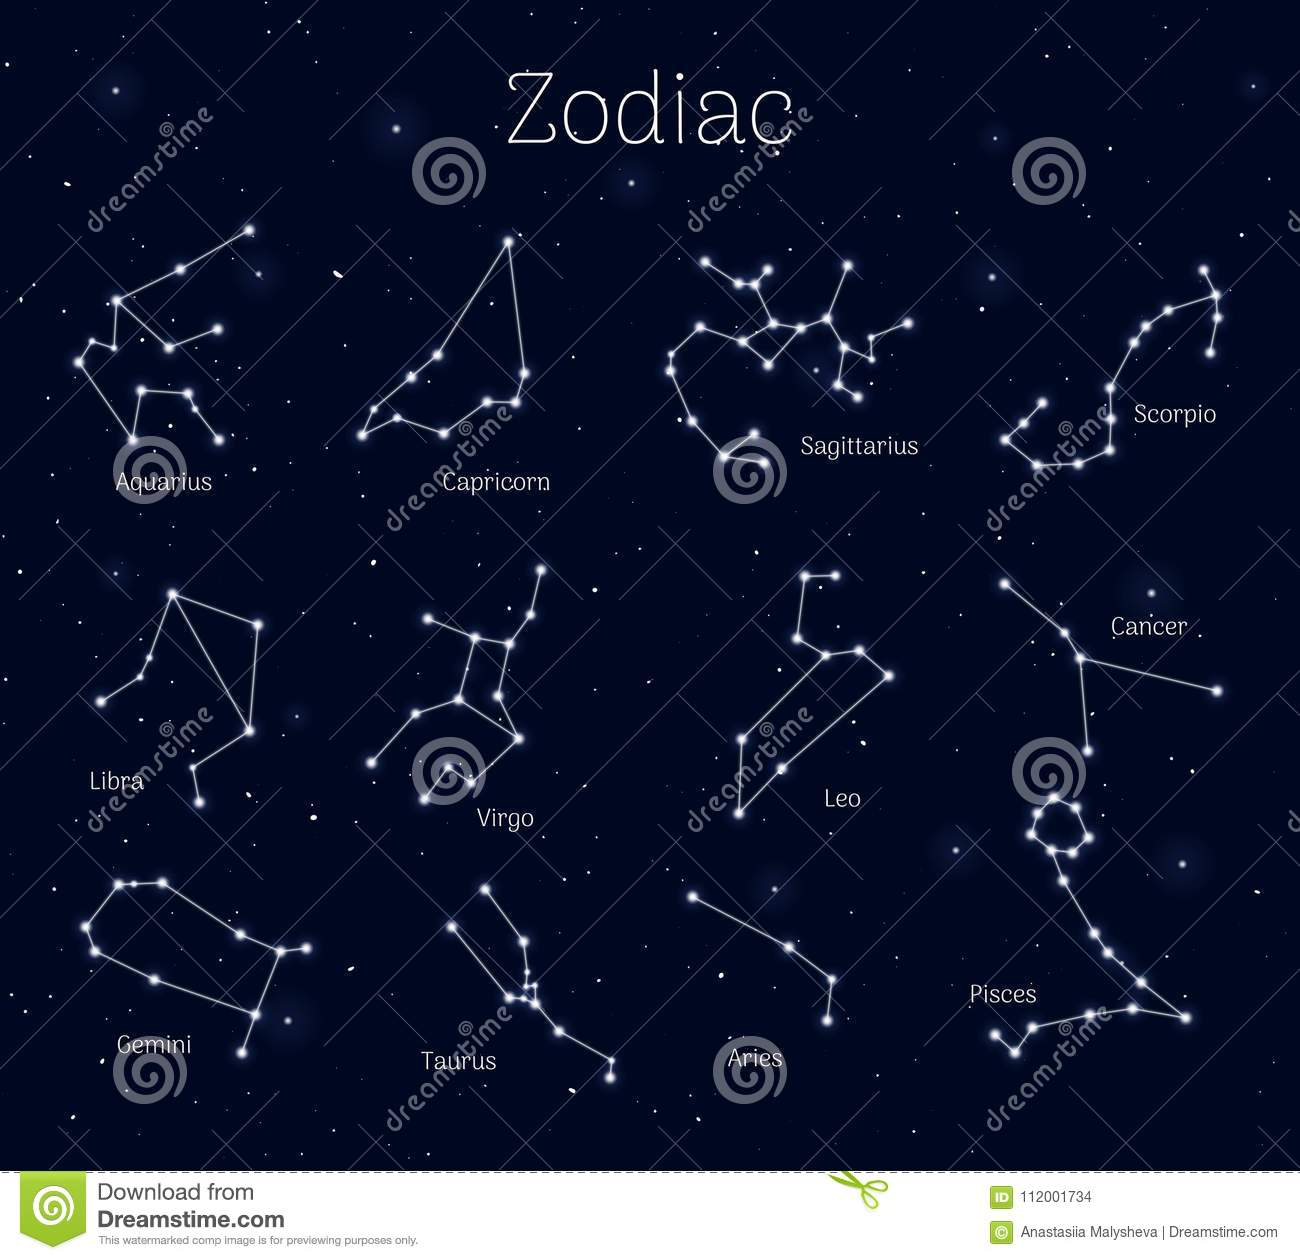 Set zodiac signs, night sky background, realistic